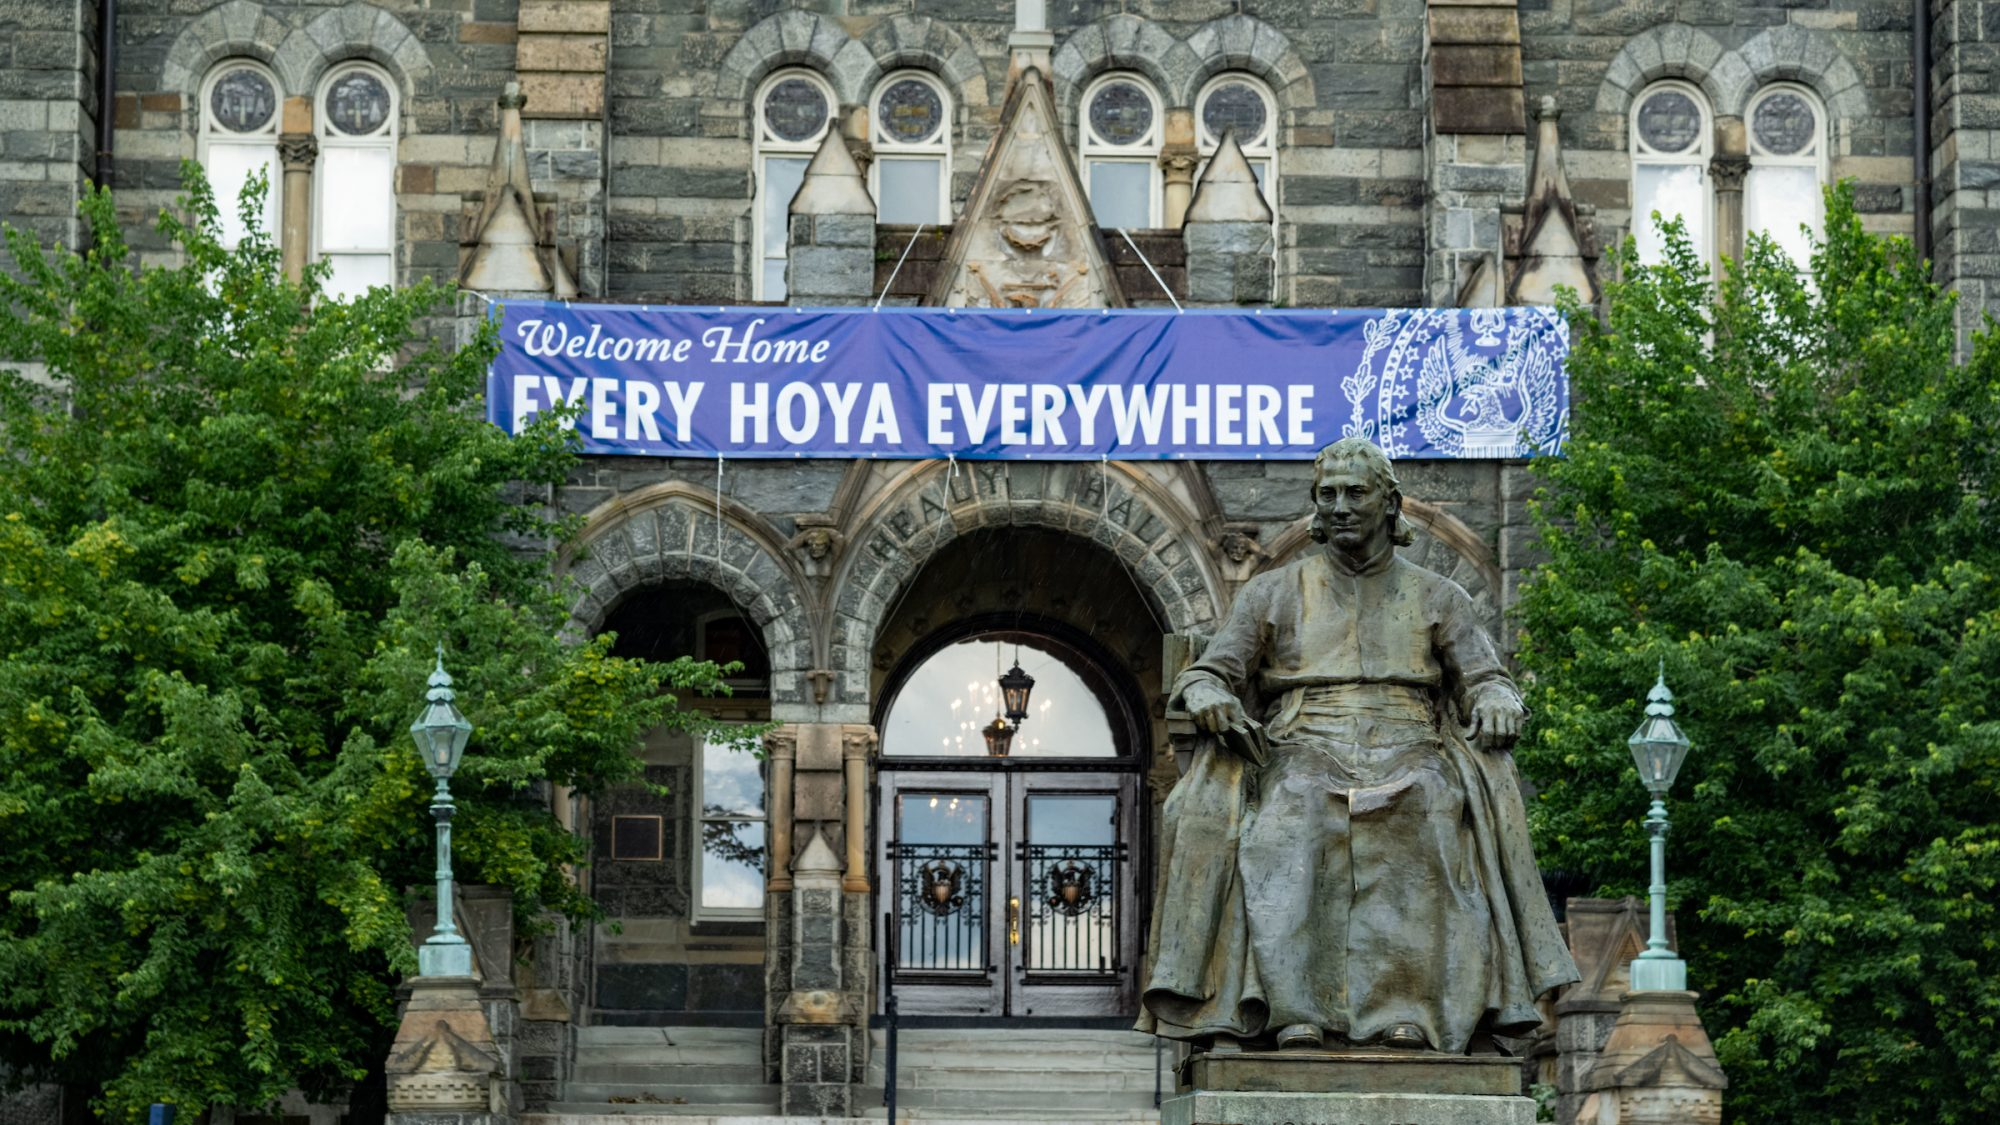 photo of john carroll statue with flag behind that says every hoya everywhere